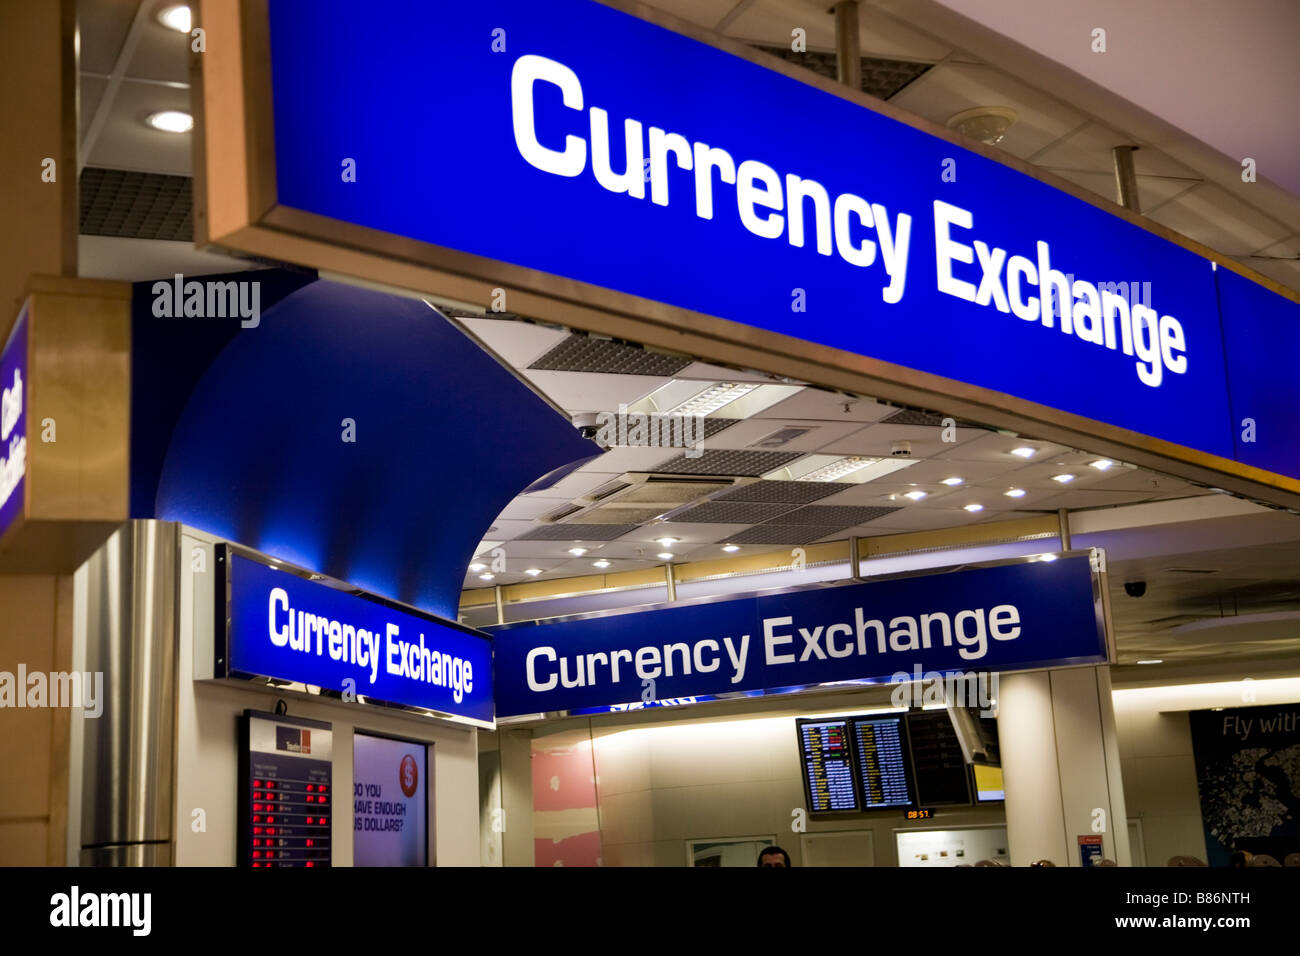 currency rates airport stock photos currency rates airport stock images alamy. Black Bedroom Furniture Sets. Home Design Ideas